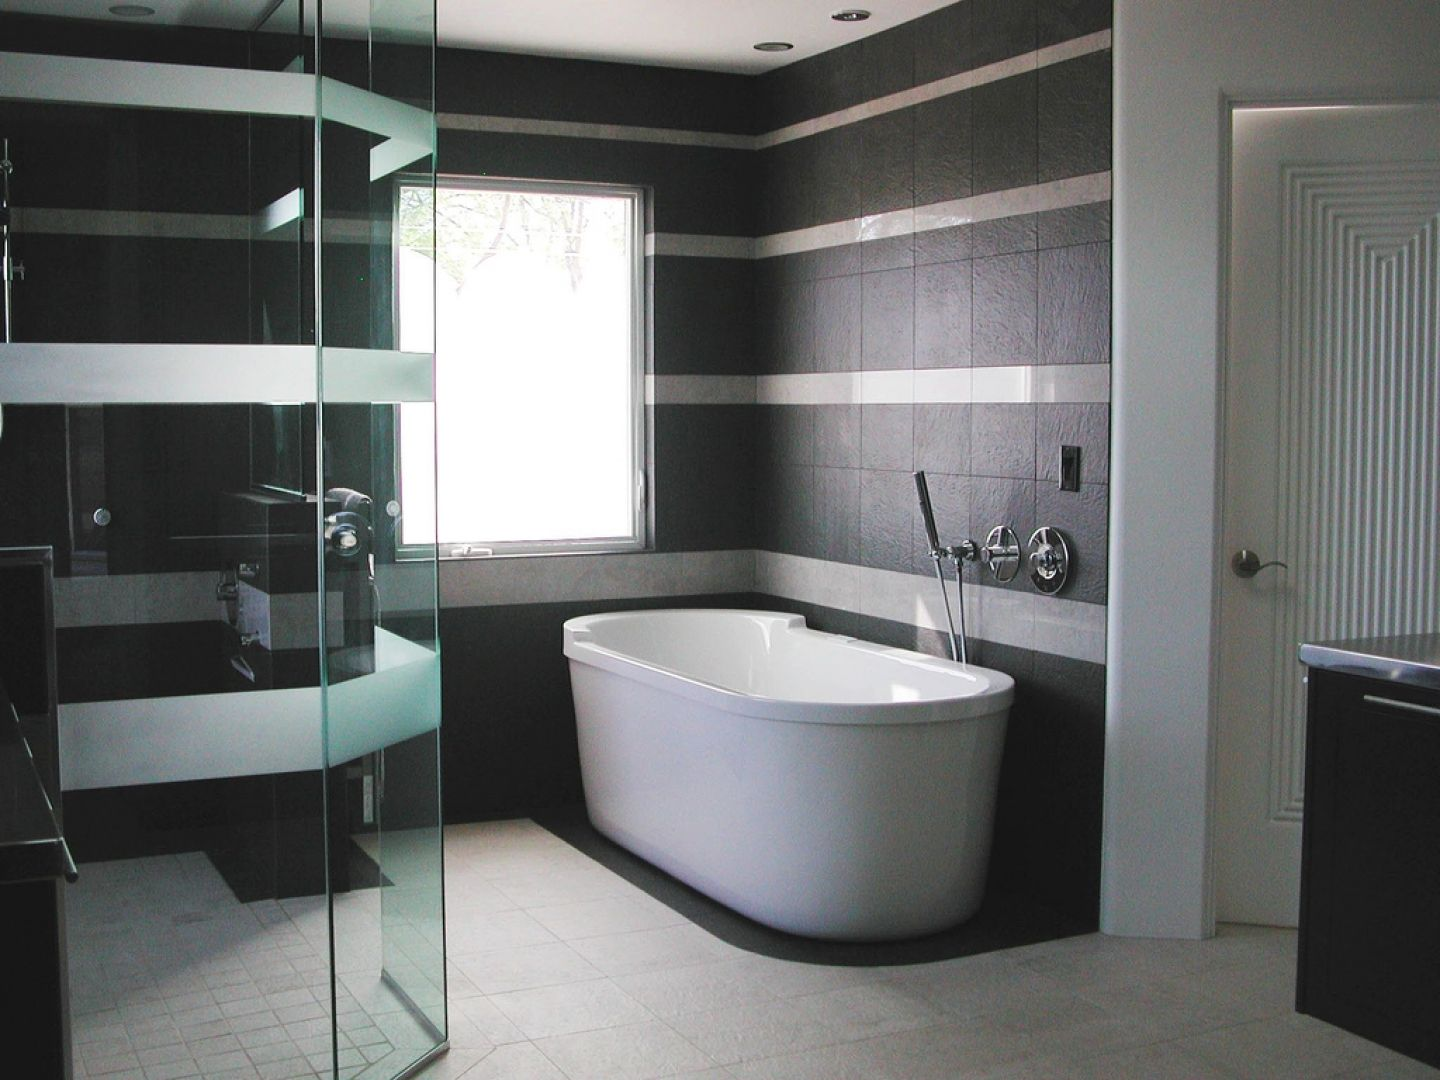 Grey Bathroom Designs Simple Coolbathroomtiledesigns  Ultimate Bathrooms  Pinterest  Grey Design Inspiration